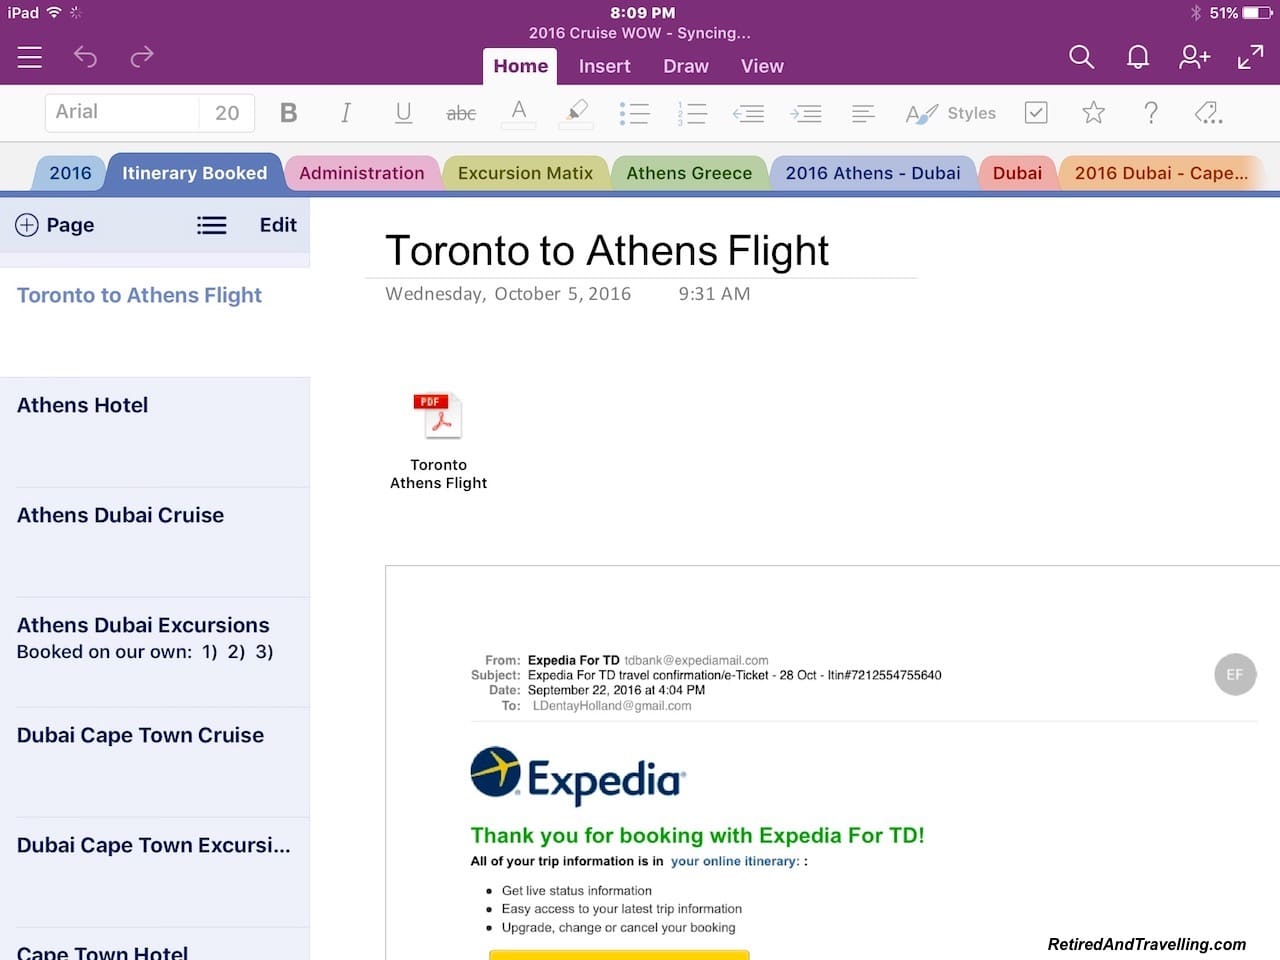 MSOneNote - Travel Apps.jpg